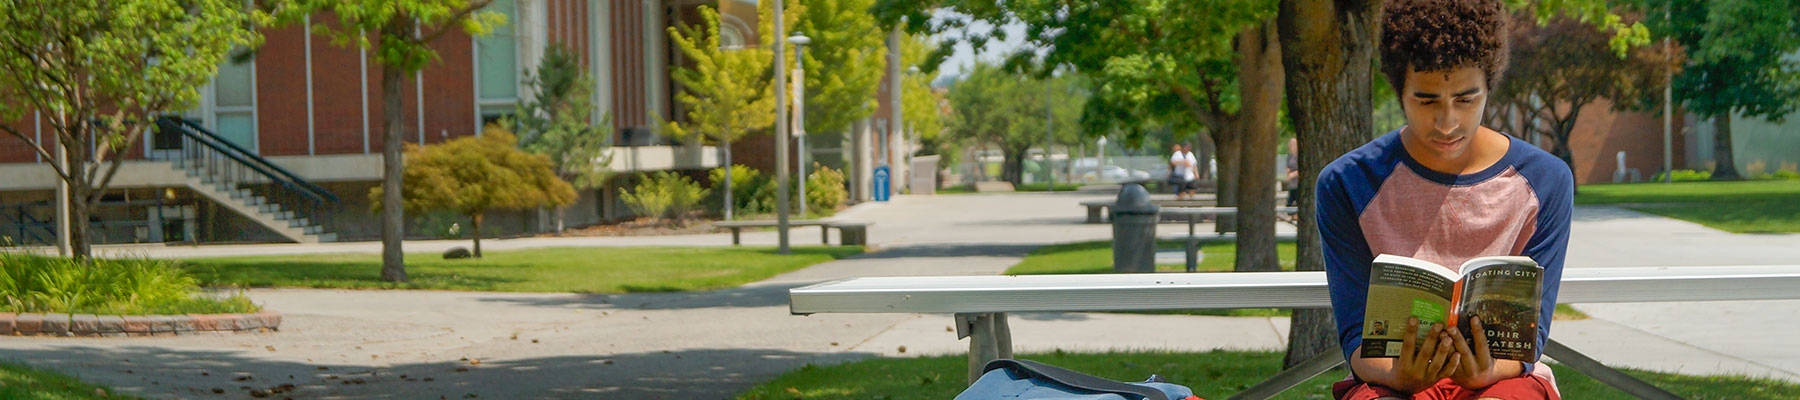 Student reading on a bench.